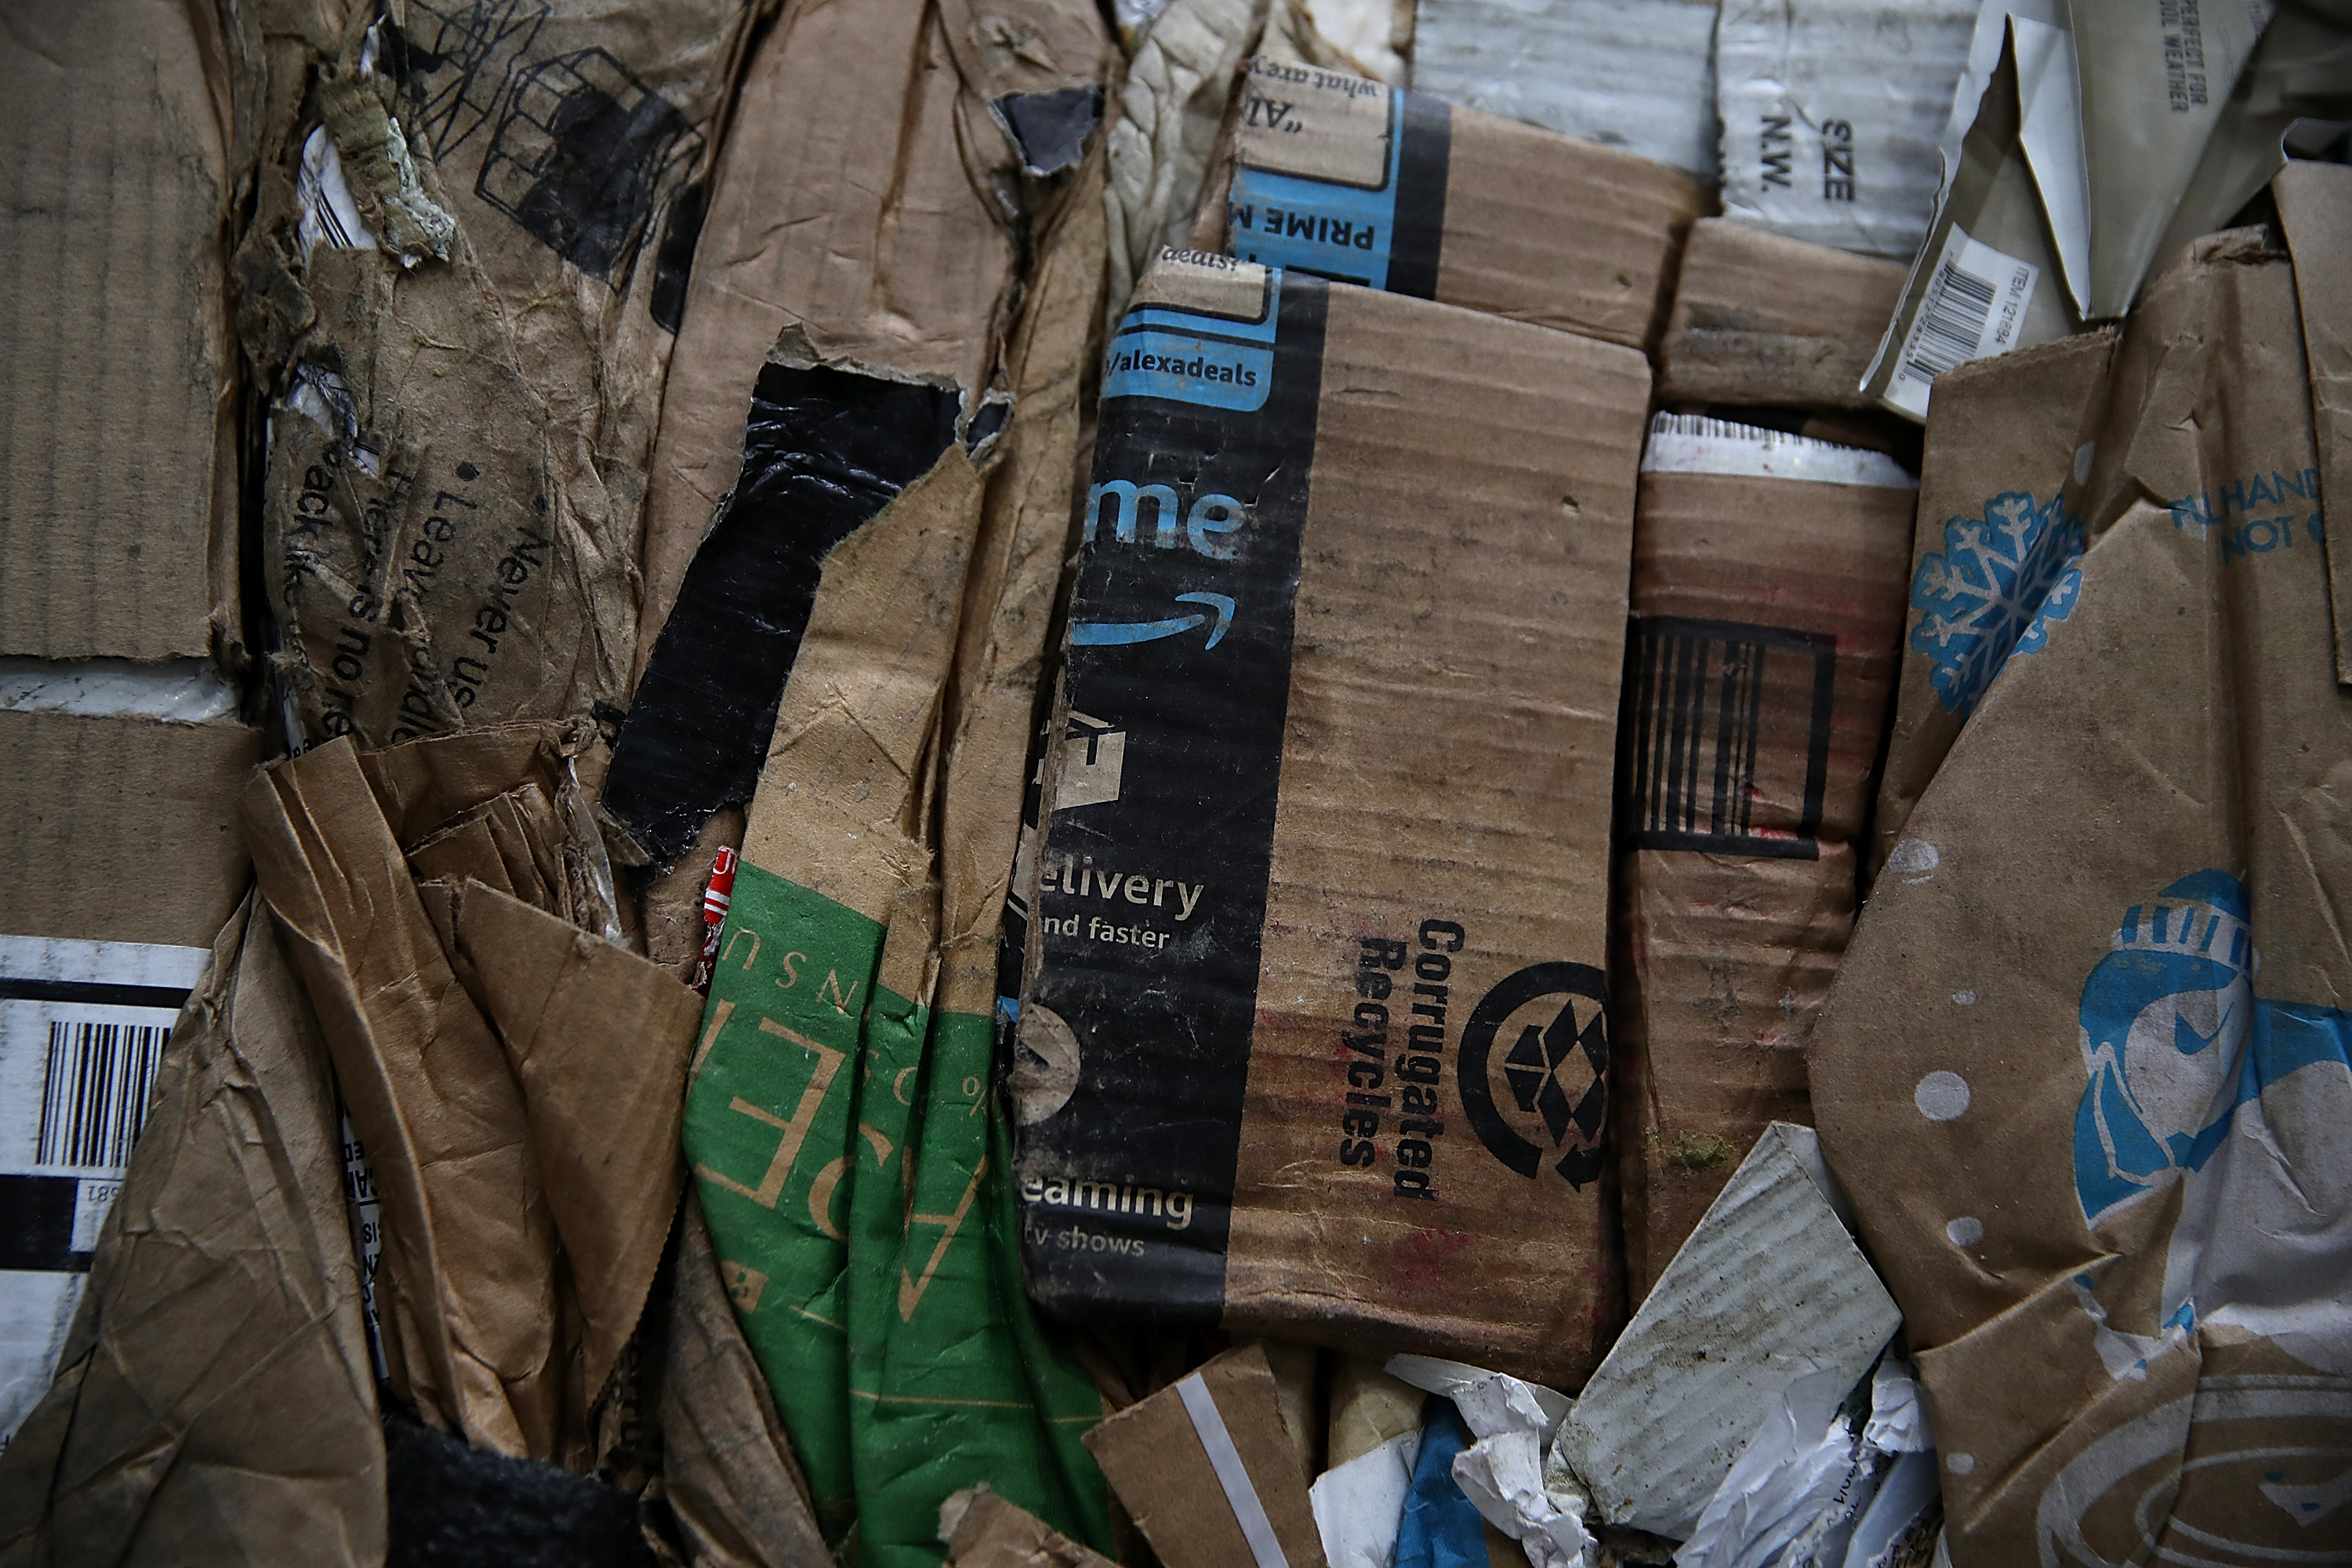 The 'Amazon effect' is flooding a struggling recycling system with cardboard